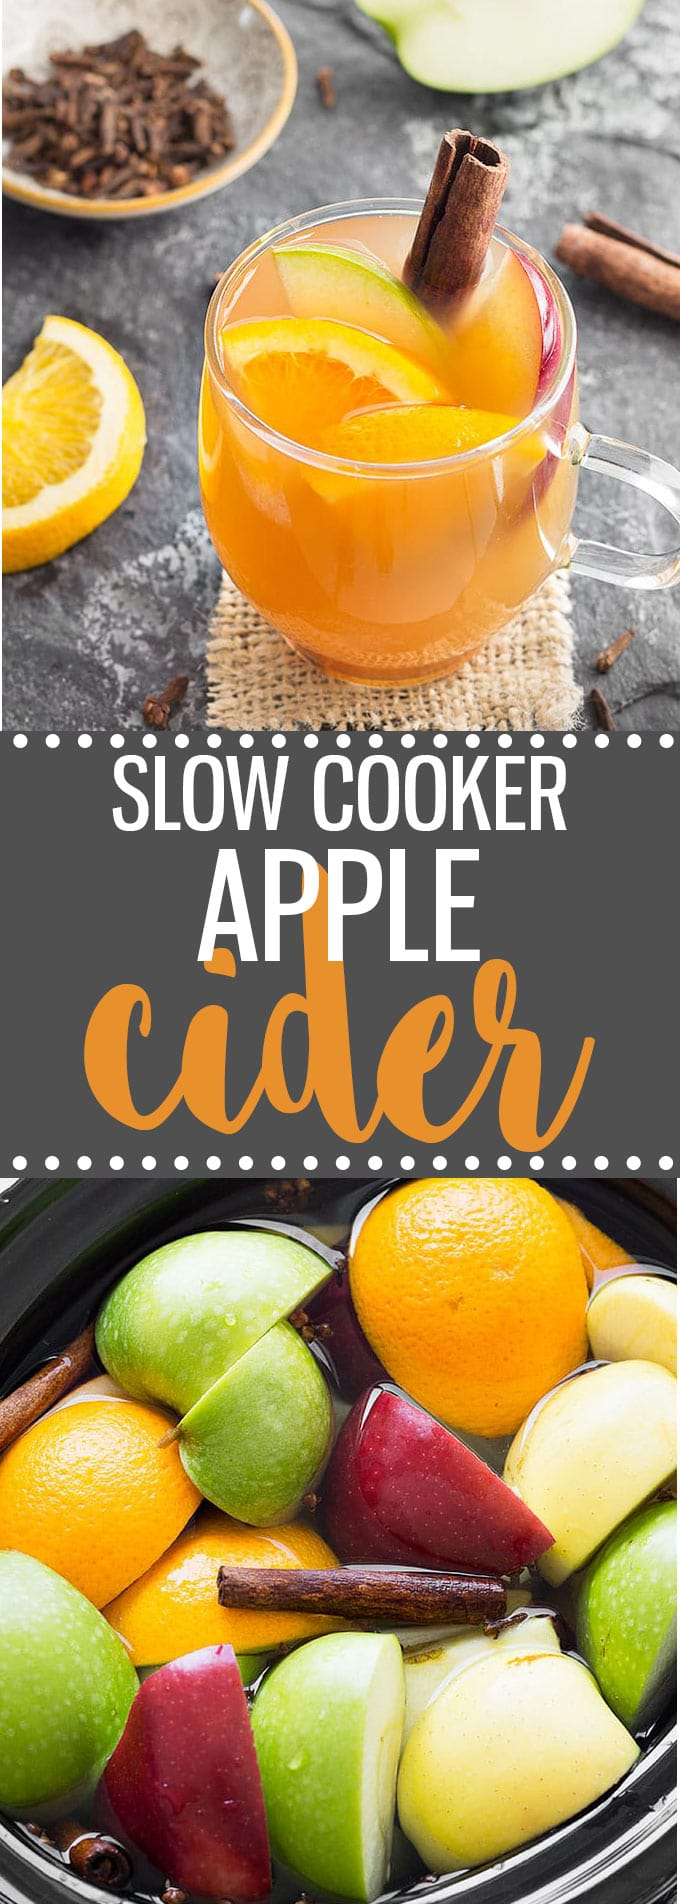 Make homemade apple cider from scratch in the slow cooker for a quick and easy, cozy fall drink.